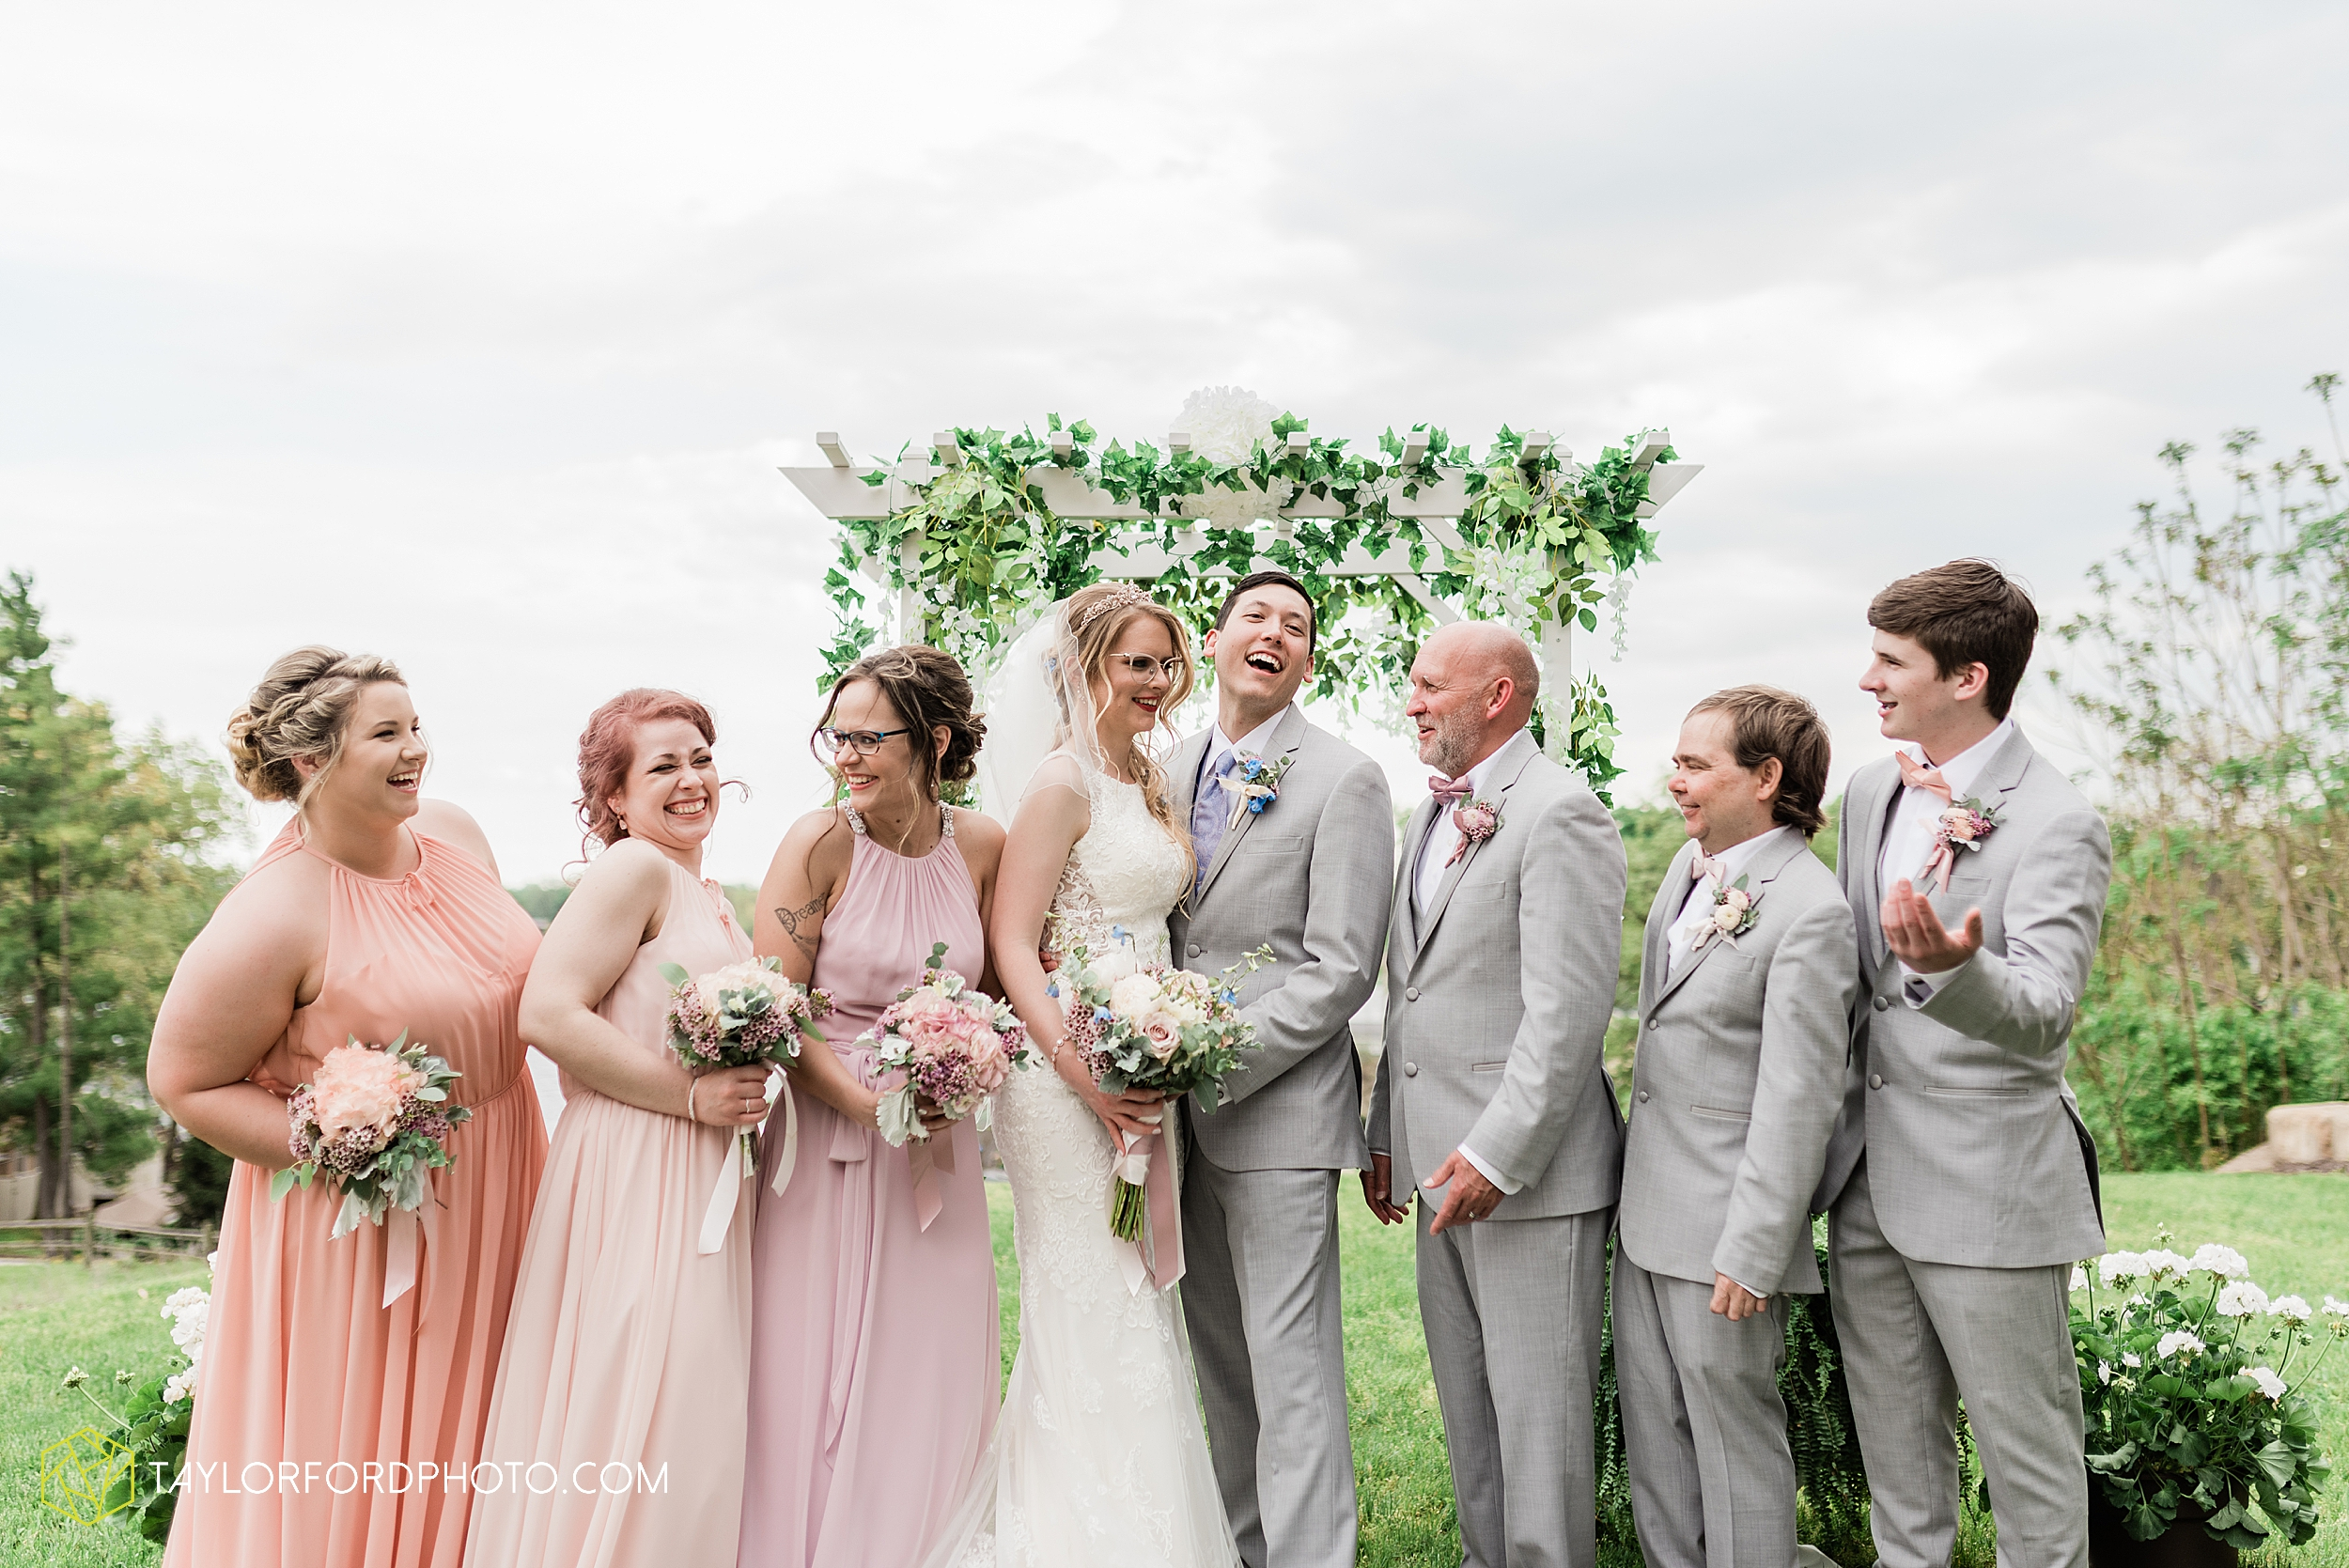 janine-shaun-oakwood-resort-syracuse-indiana-lake-wawasee-wedding-hilltop-one-fine-day-photographer-photography-taylor-ford-hirschy-photographer_2763.jpg